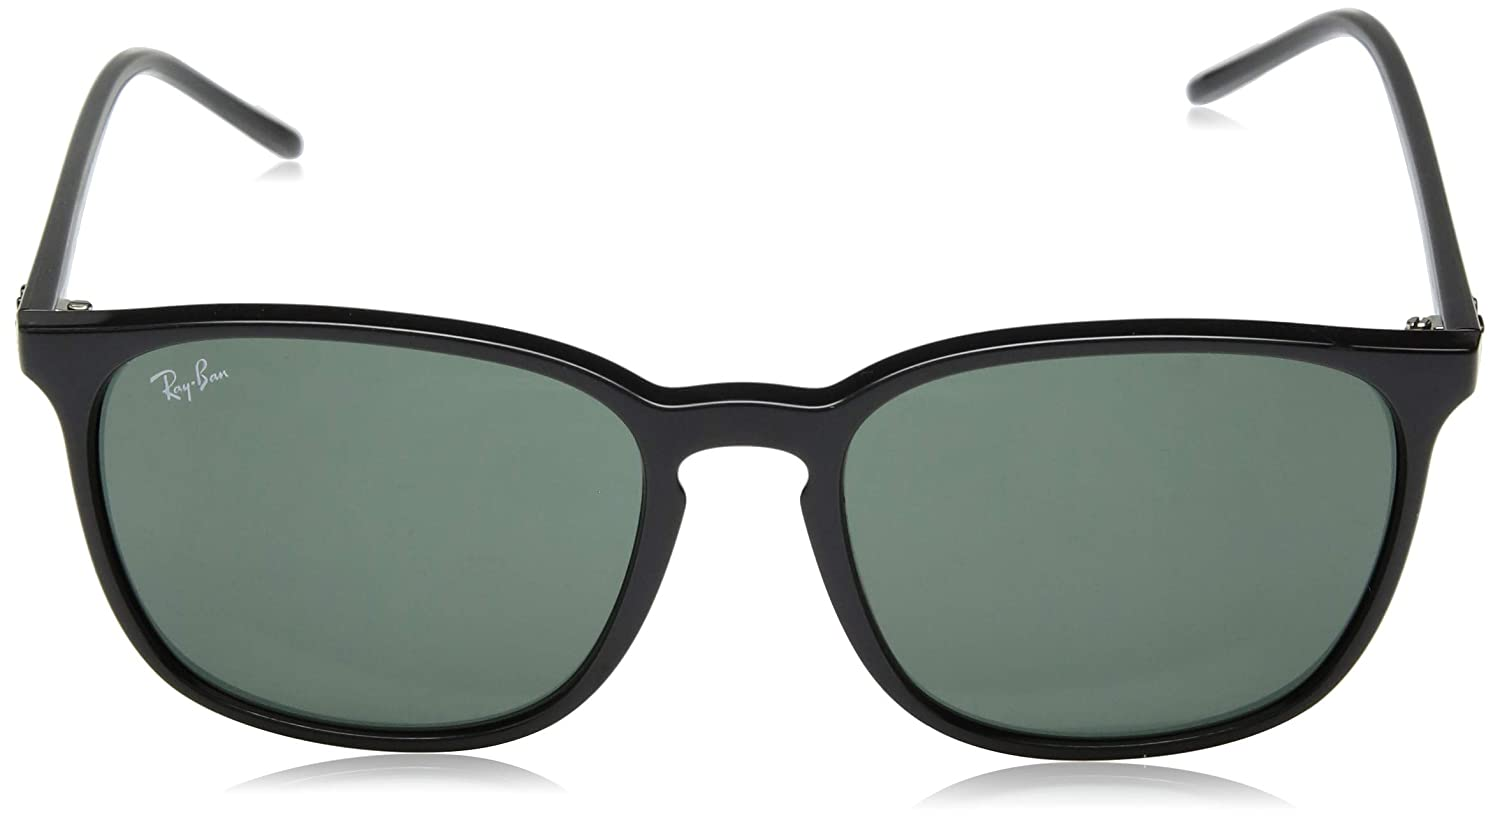 0b59e3fba9c Ray-Ban Men s s 0RB4387 Sunglasses